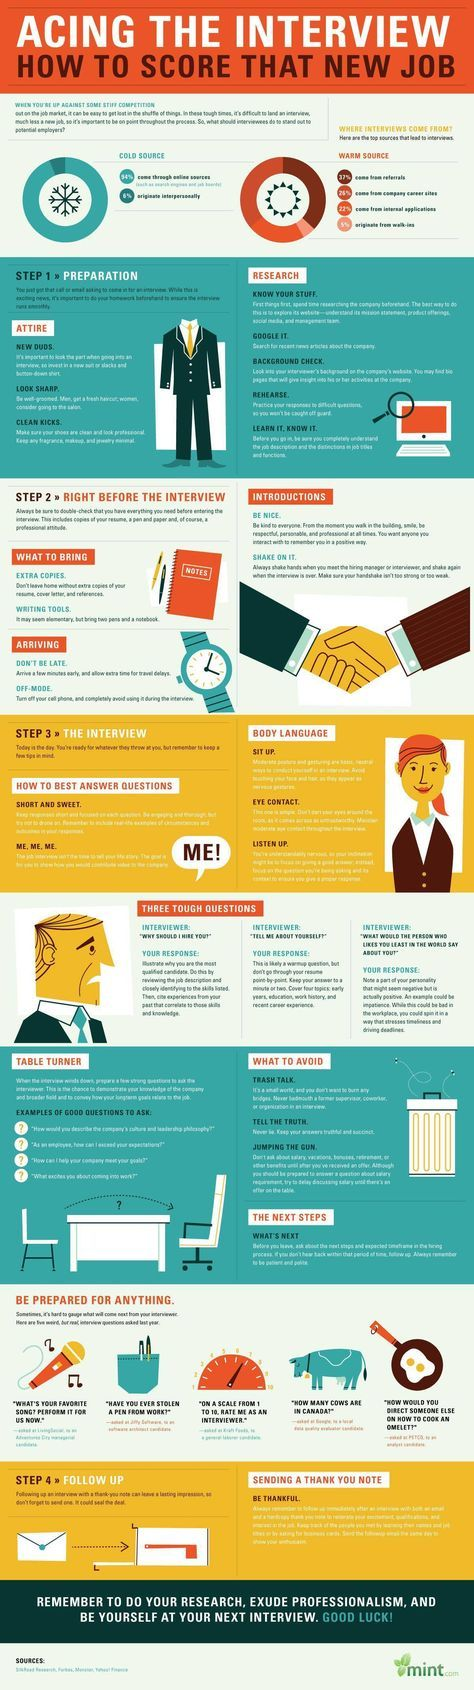 job interview infographic Want to travel the world and get your dream job? We can help http://recruitingforgood.com/